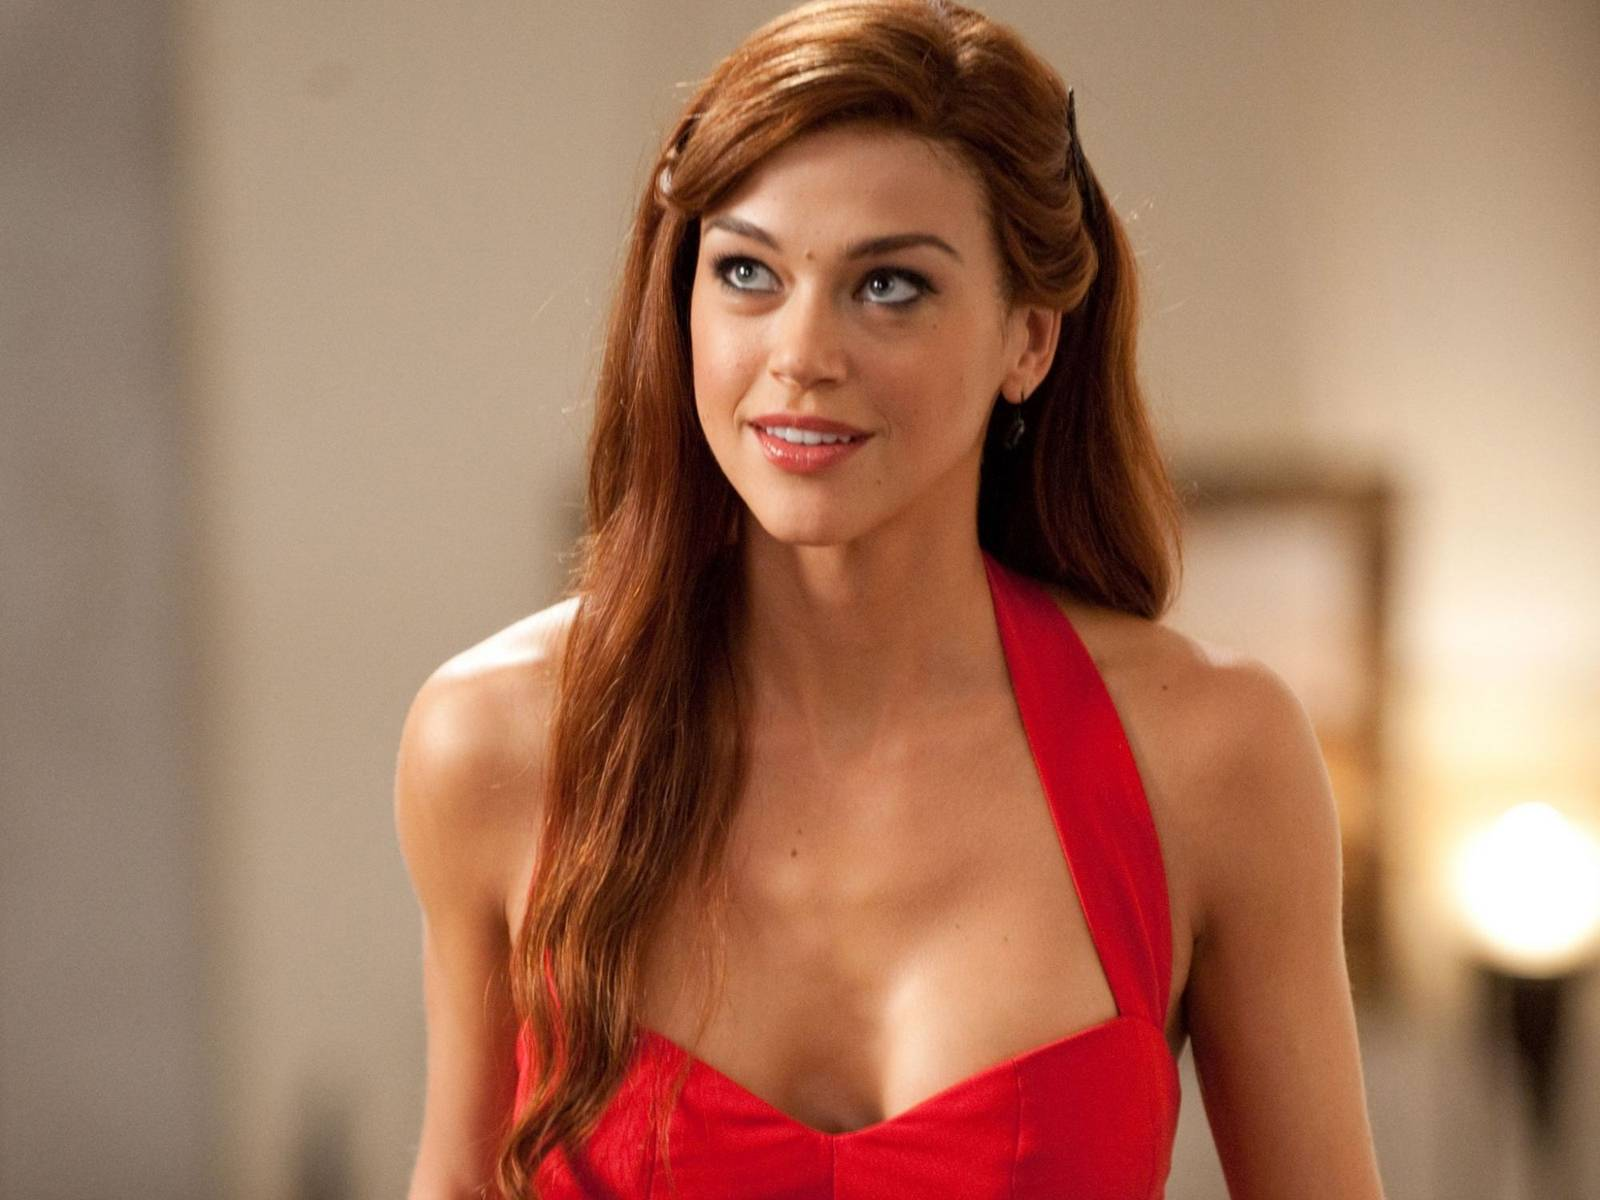 adrianne palicki marriedadrianne palicki instagram, adrianne palicki age, adrianne palicki supernatural, adrianne palicki married, adrianne palicki wonder woman, adrianne palicki john wick, adrianne palicki imdb, adrianne palicki bio, adrianne palicki 2015, adrianne palicki shield, adrianne palicki wonder woman pilot, adrianne palicki net worth, adrianne palicki fansite, adrianne palicki legion, adrianne palicki twitter, adrianne palicki interview, adrianne palicki engaged, adrianne palicki drunk history, adrianne palicki agents of shield, adrianne palicki wonder woman shorts